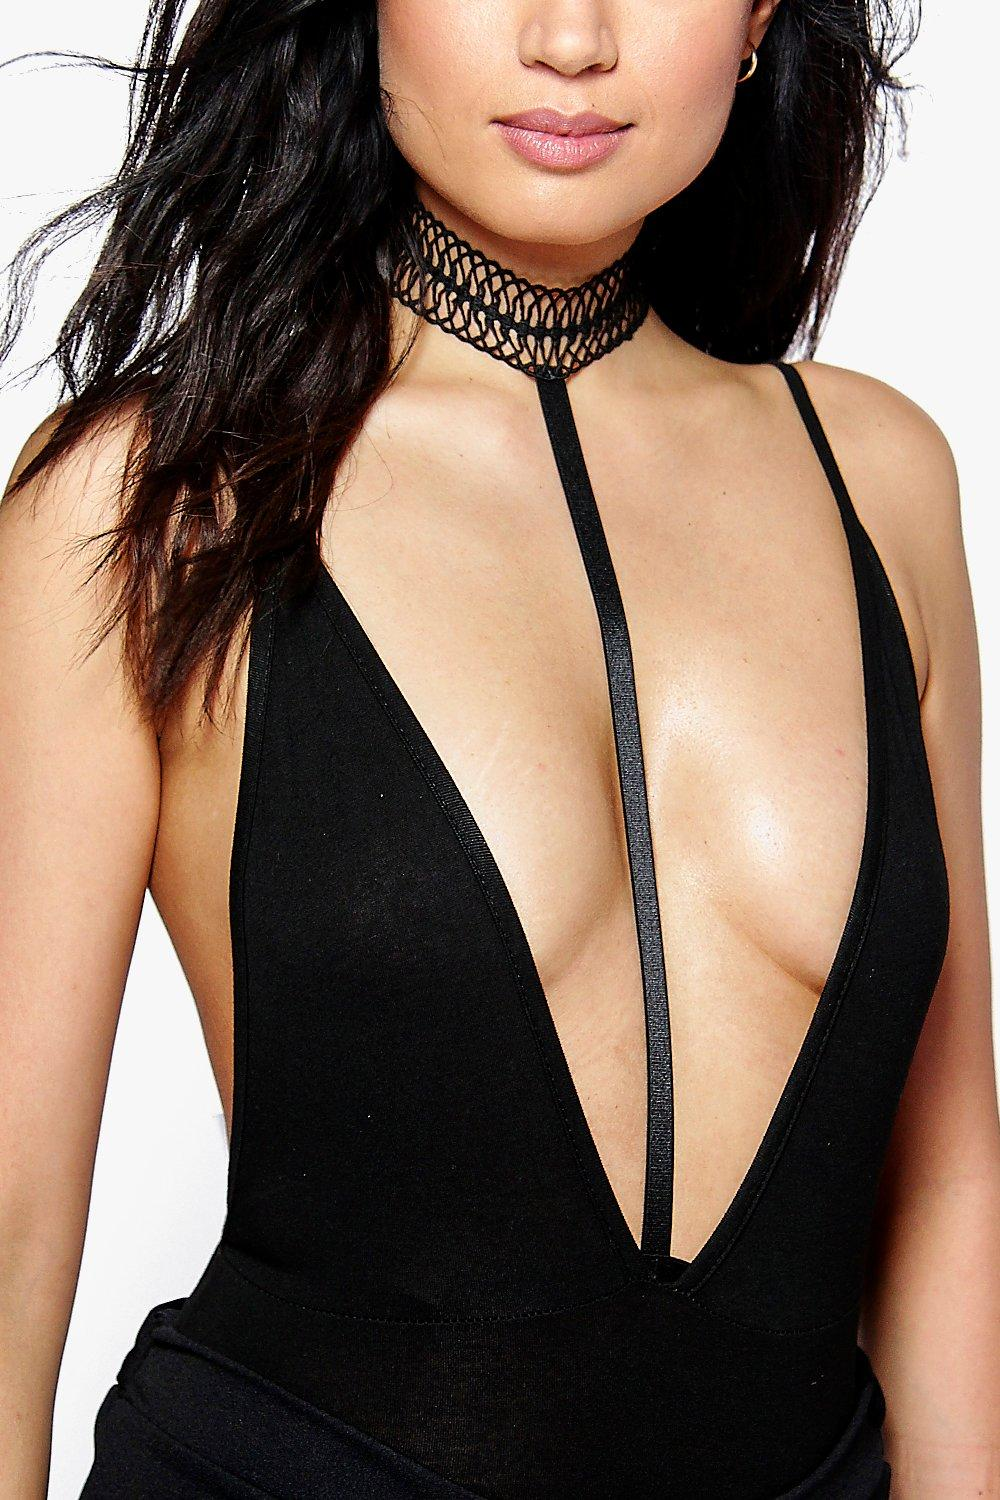 Lucy Webbed Lace Choker Body Harness